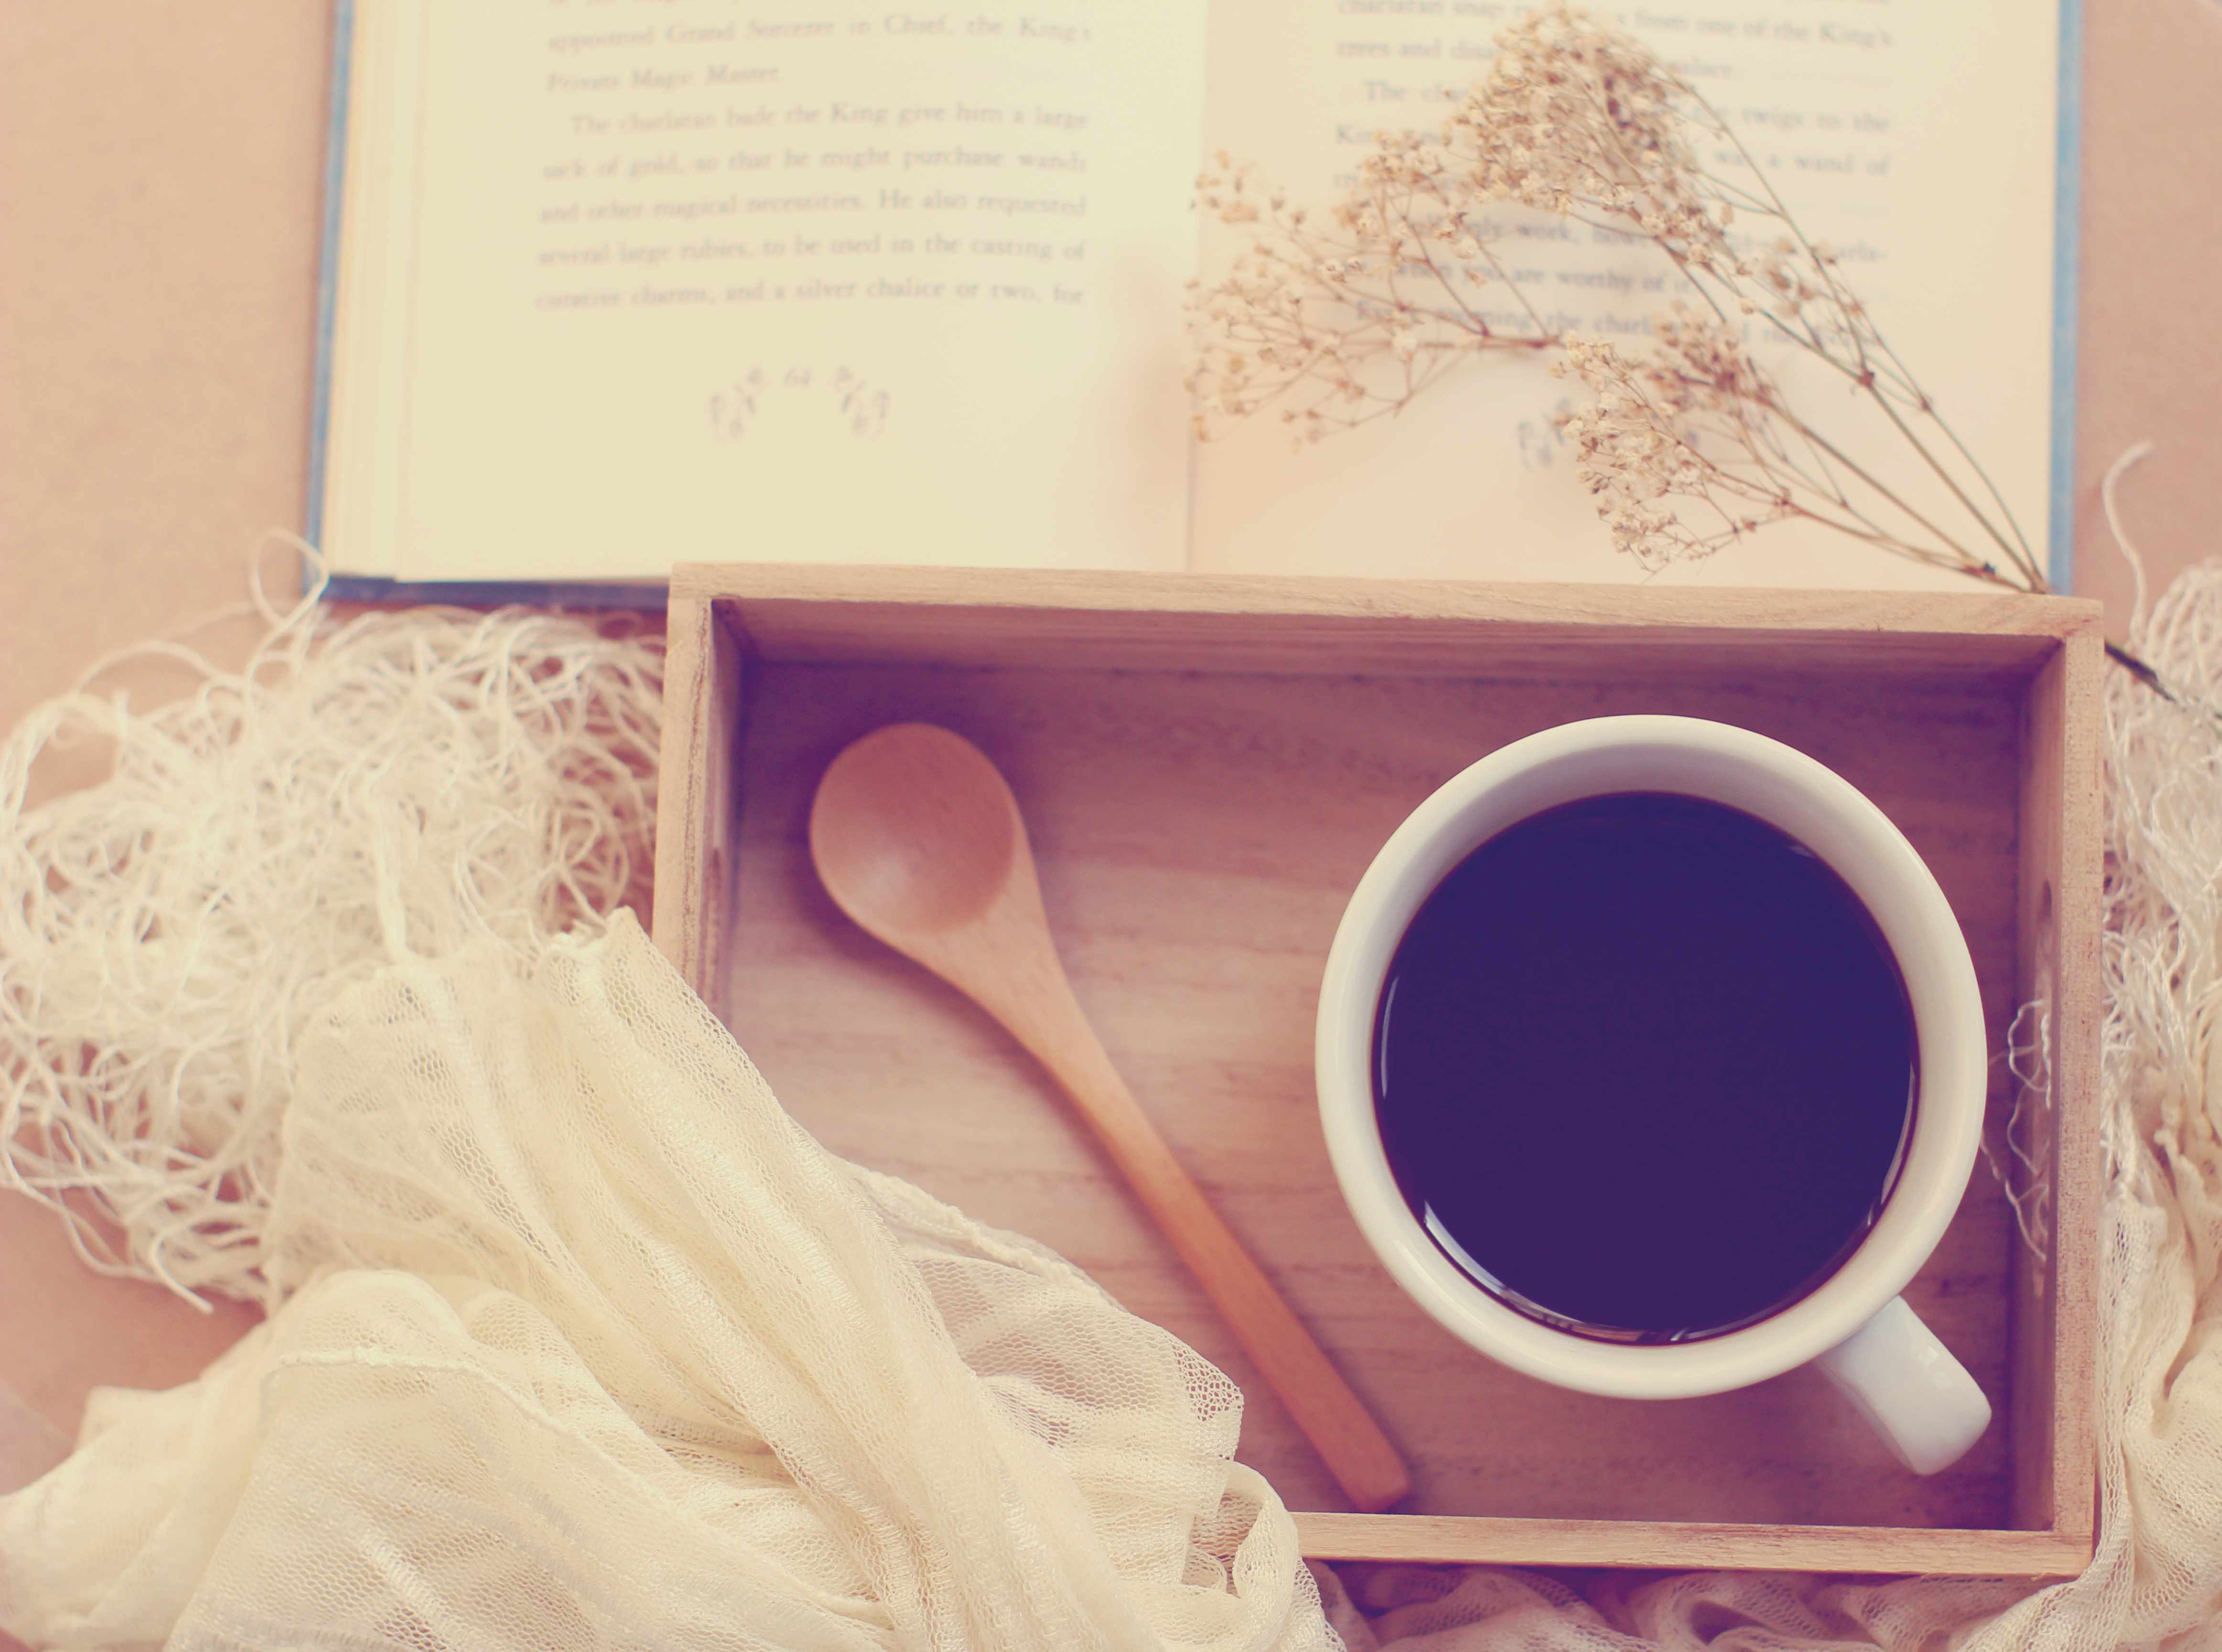 Black coffee and spoon on wooden tray with book, retro filter effect